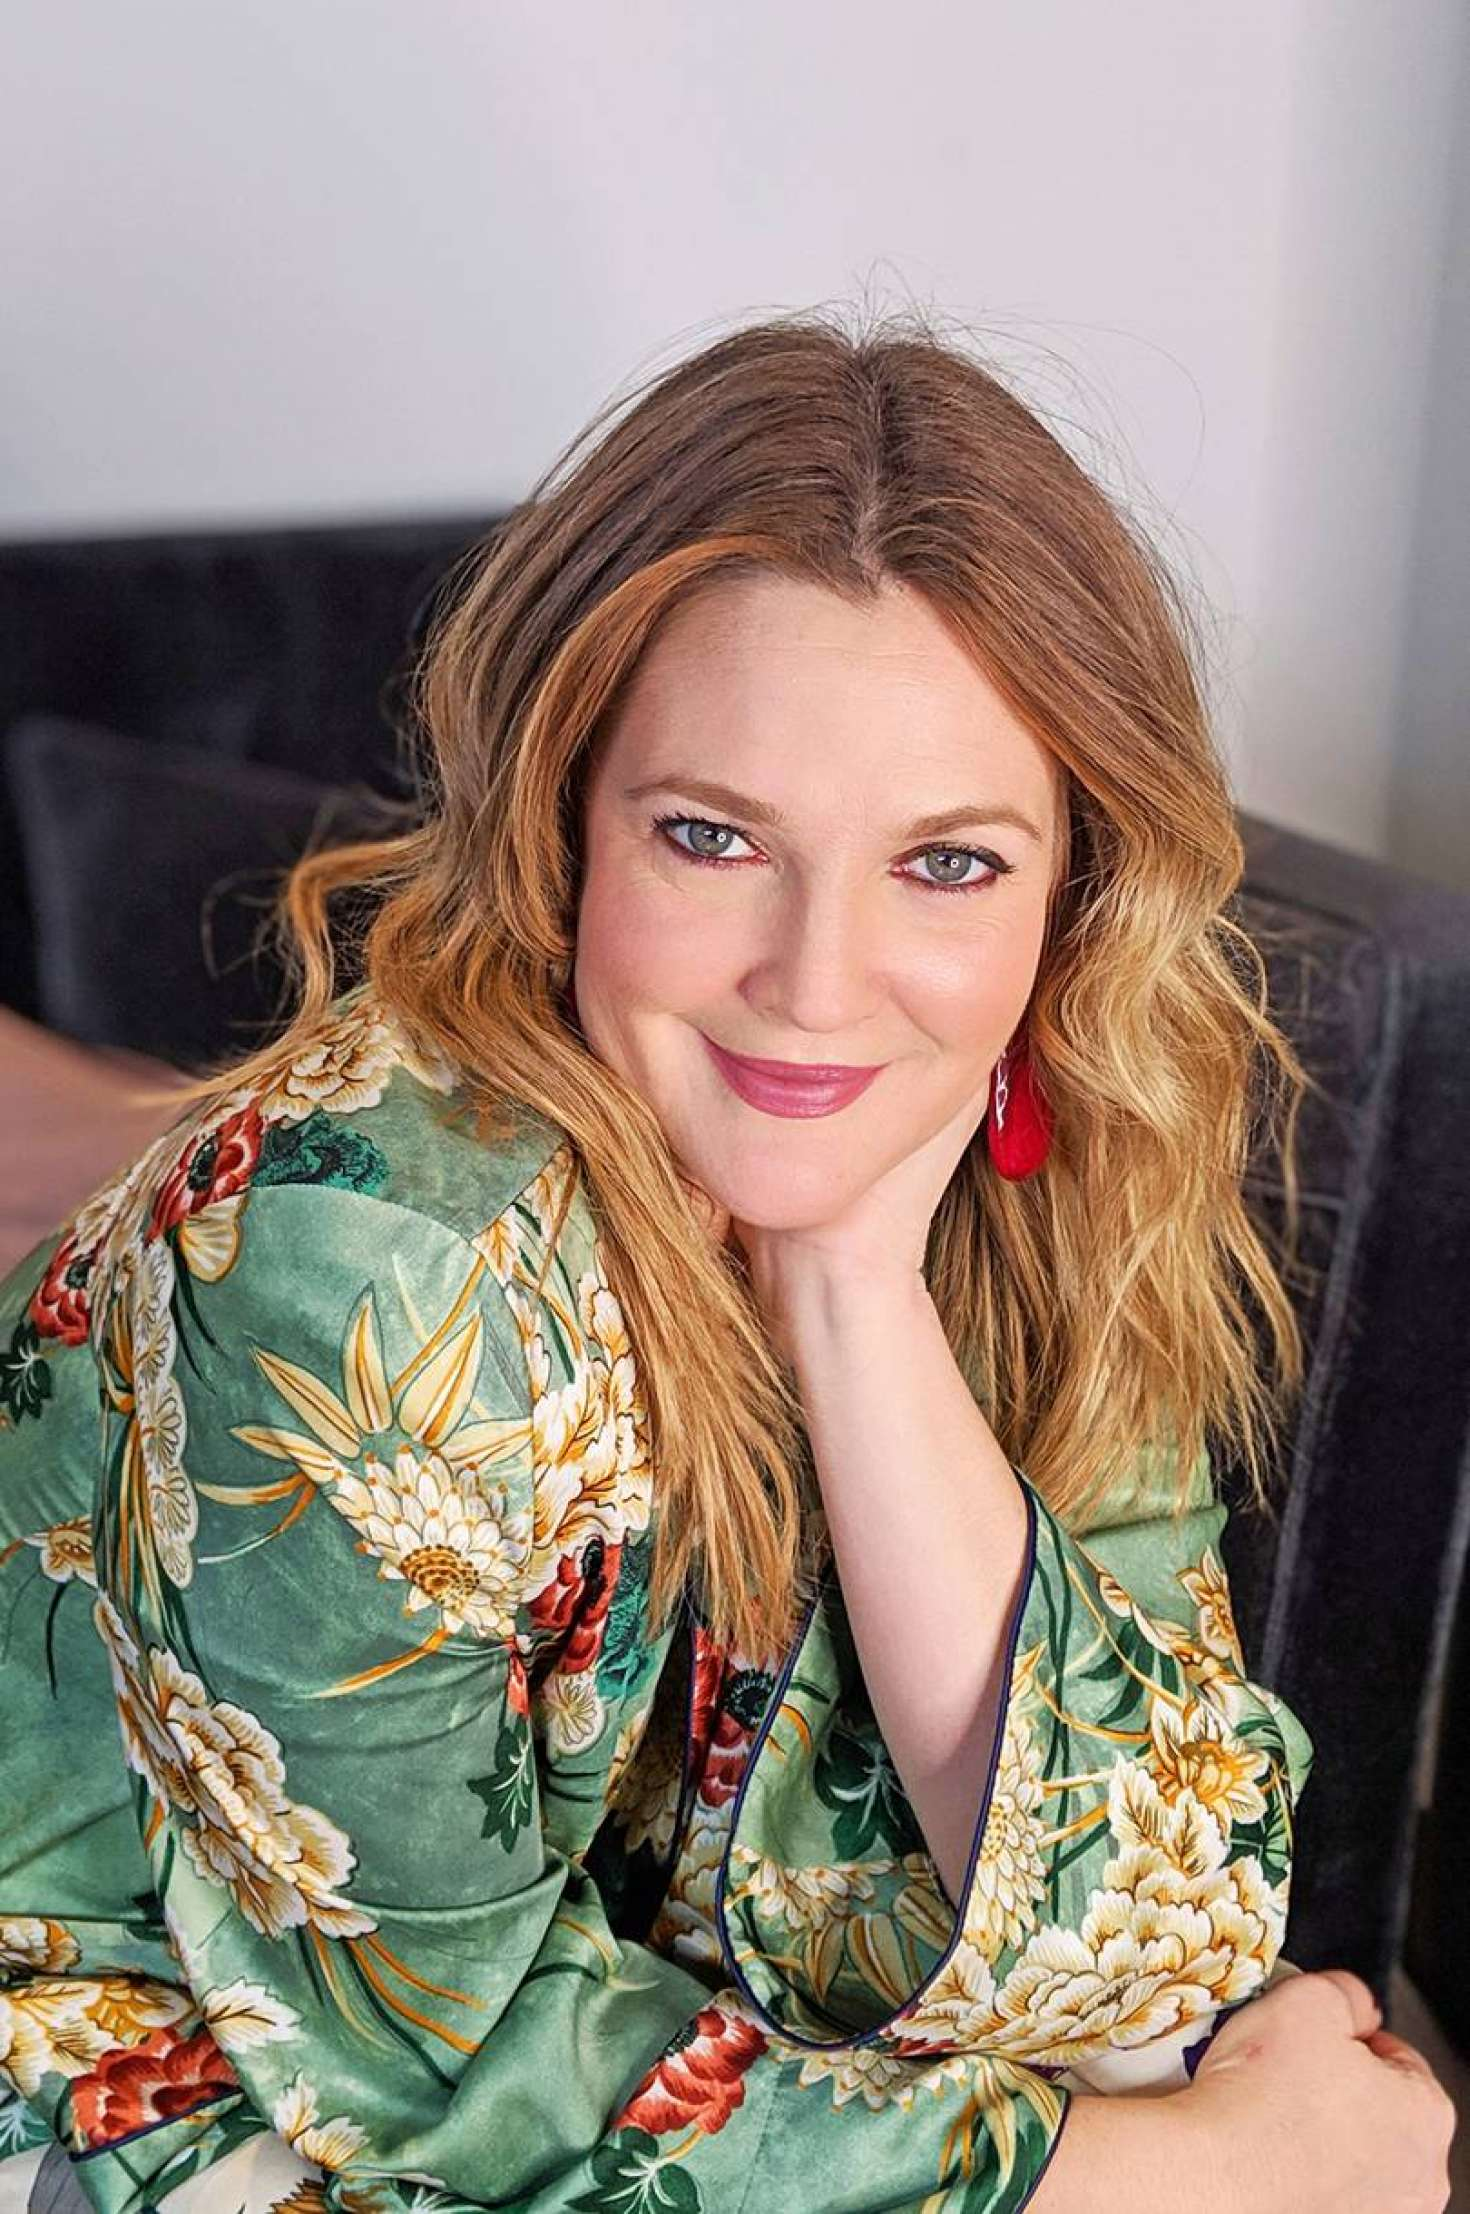 2019 Drew Barrymore nudes (12 photos), Topless, Hot, Twitter, see through 2020